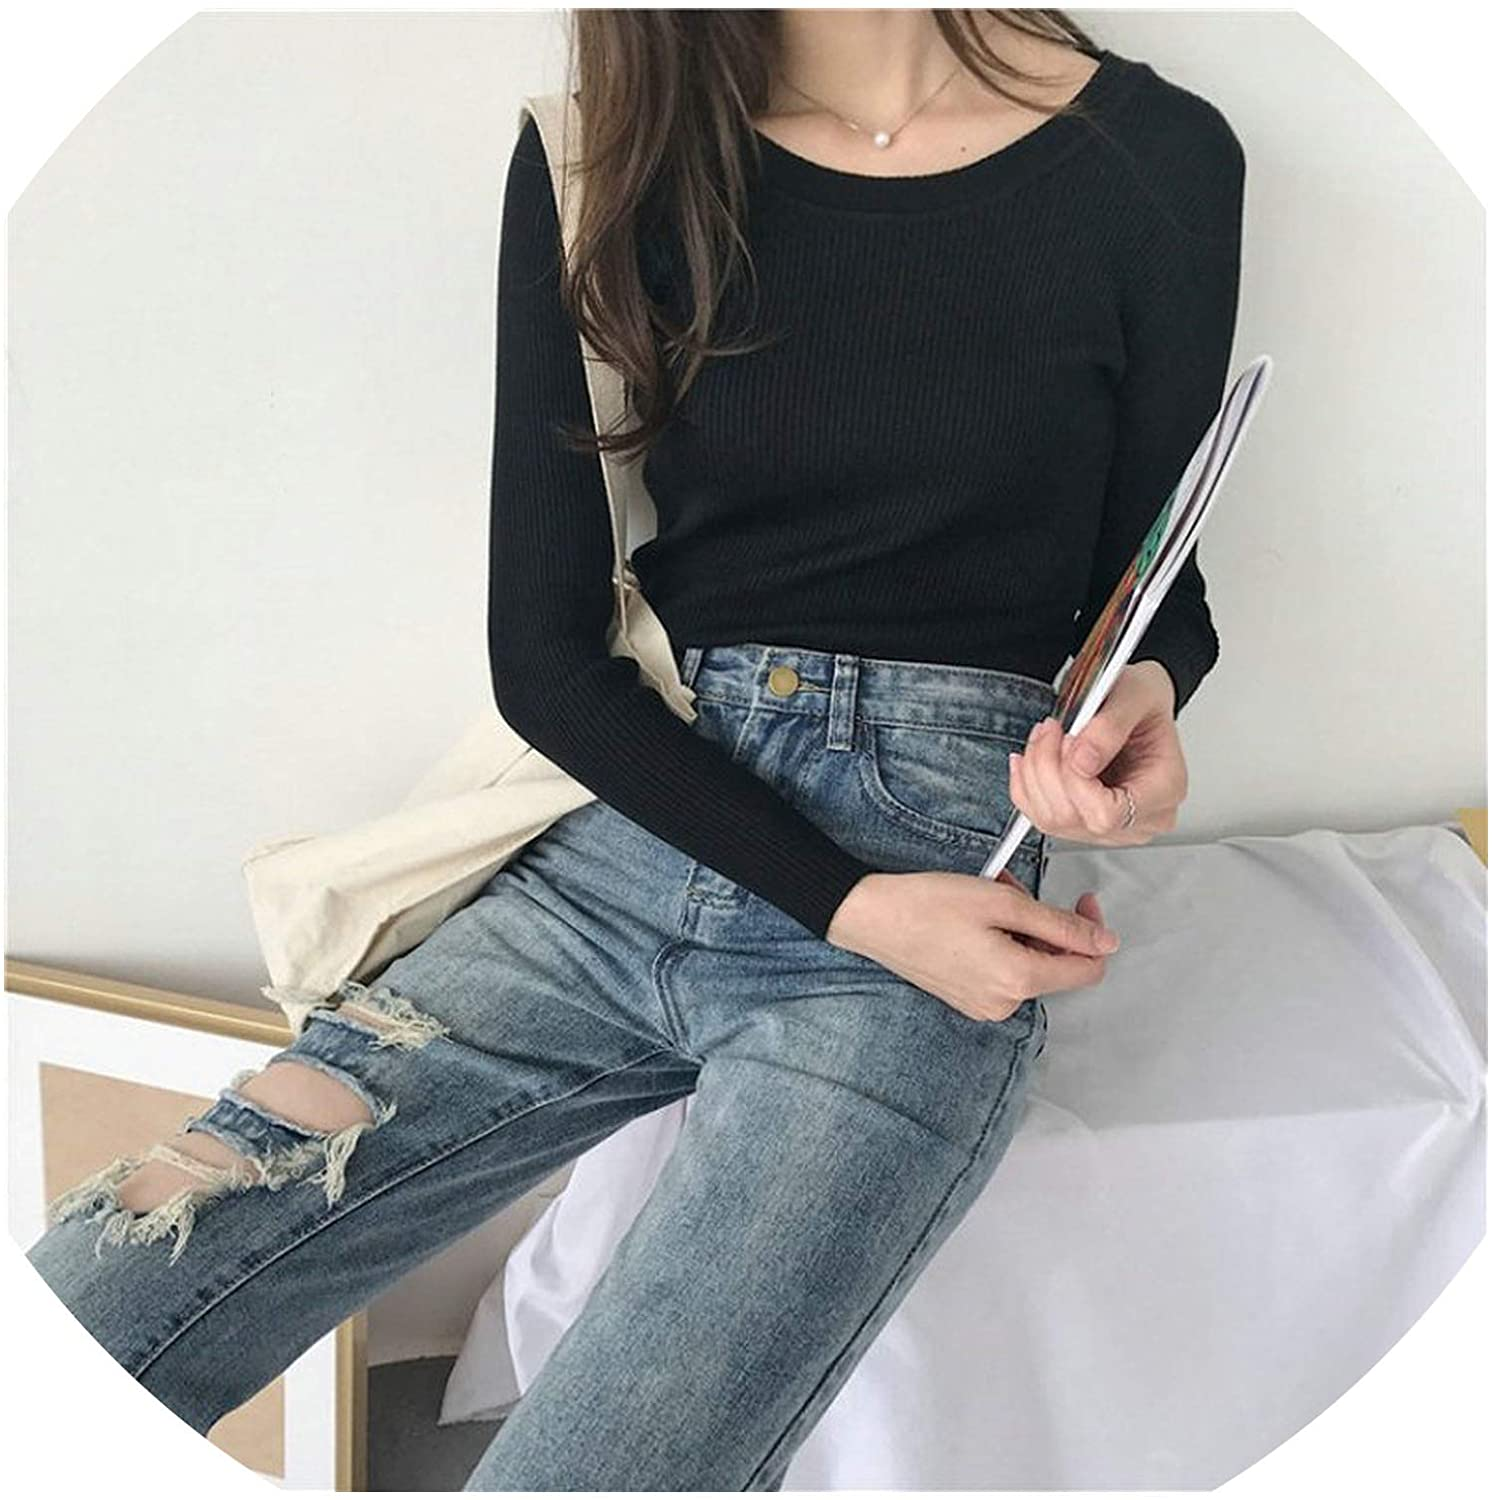 Knitted Sweater Women Clothes Slim Pullover Tops Casual Winter Thin Sweaters Pull Autumn